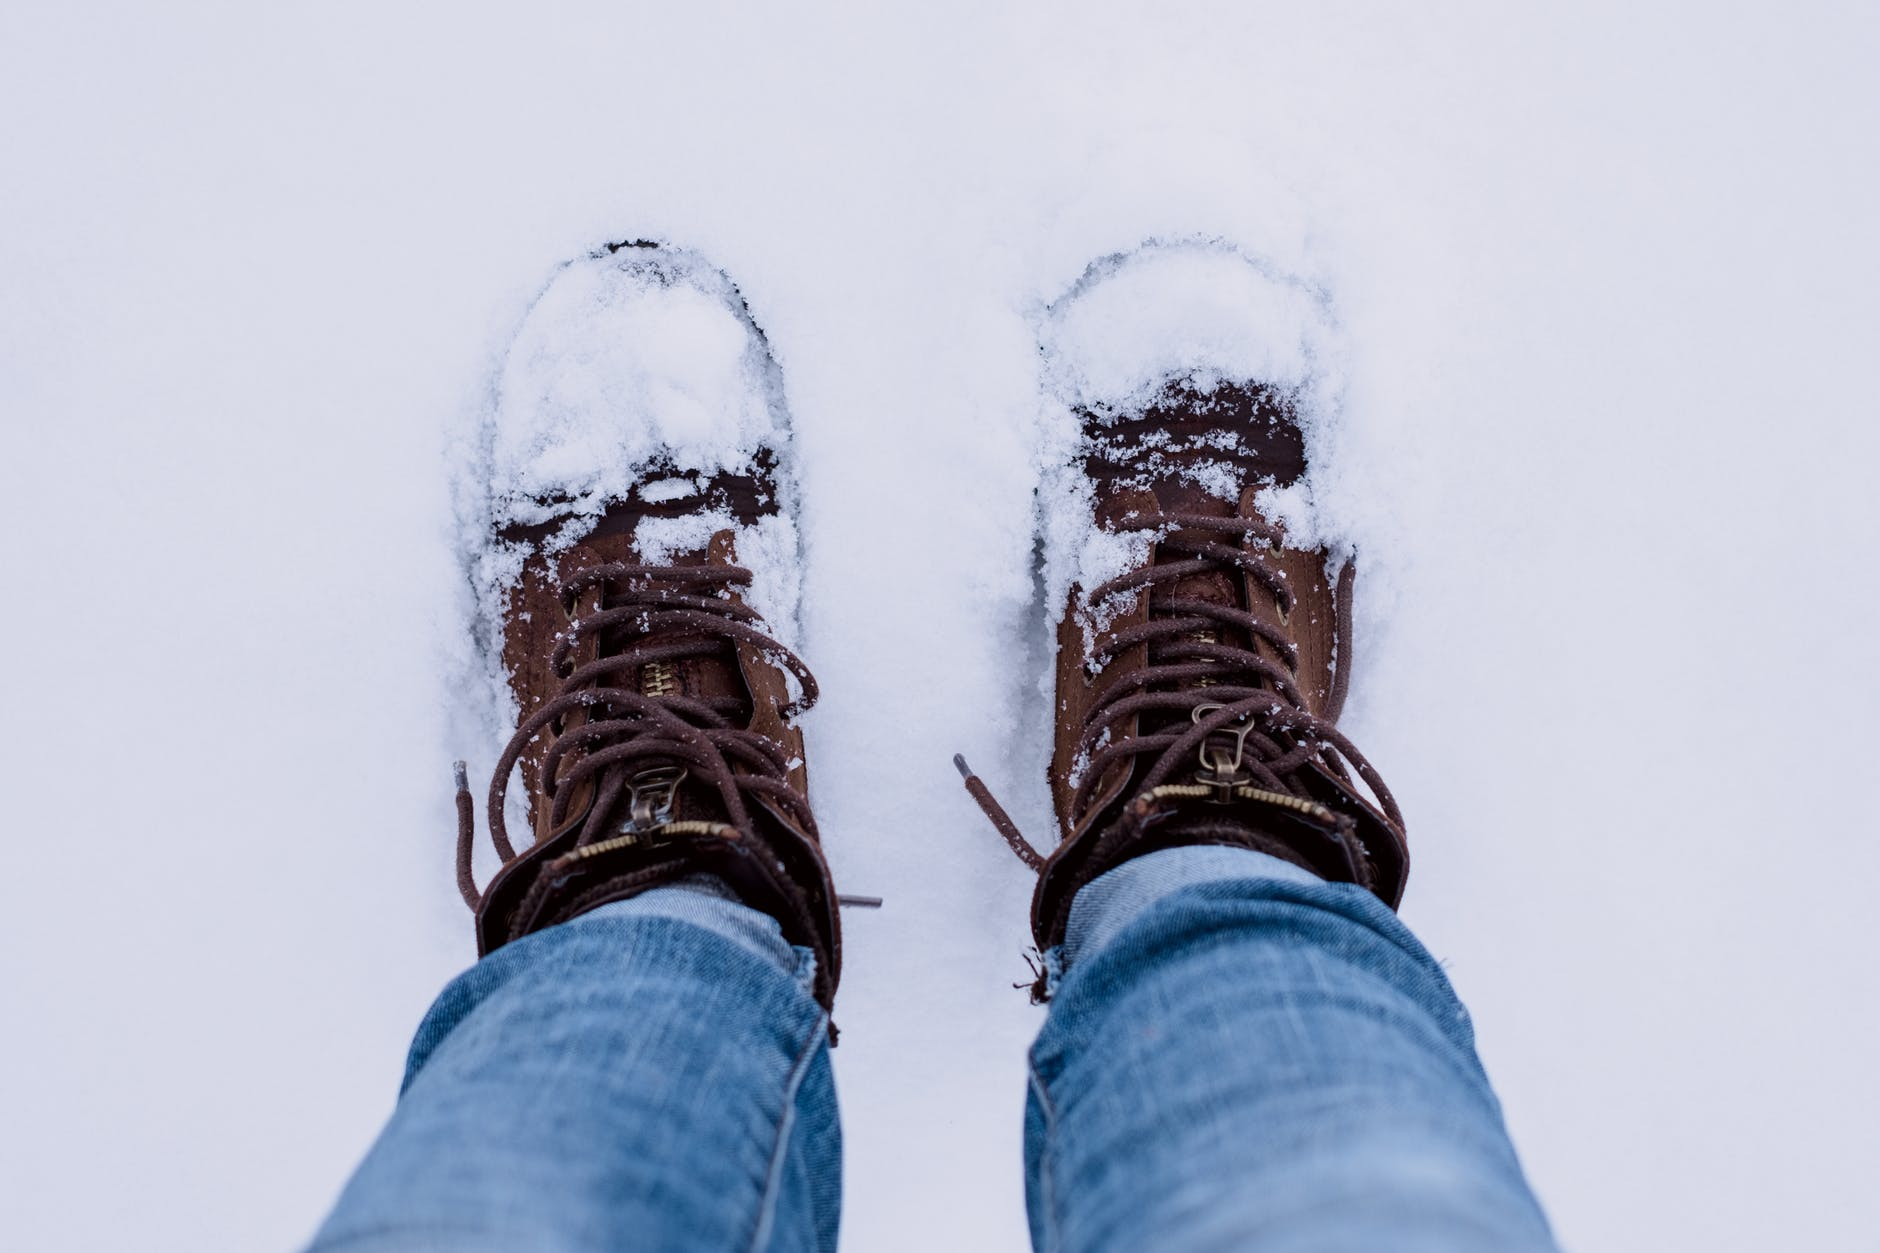 standing in the snow with snow on snow boots